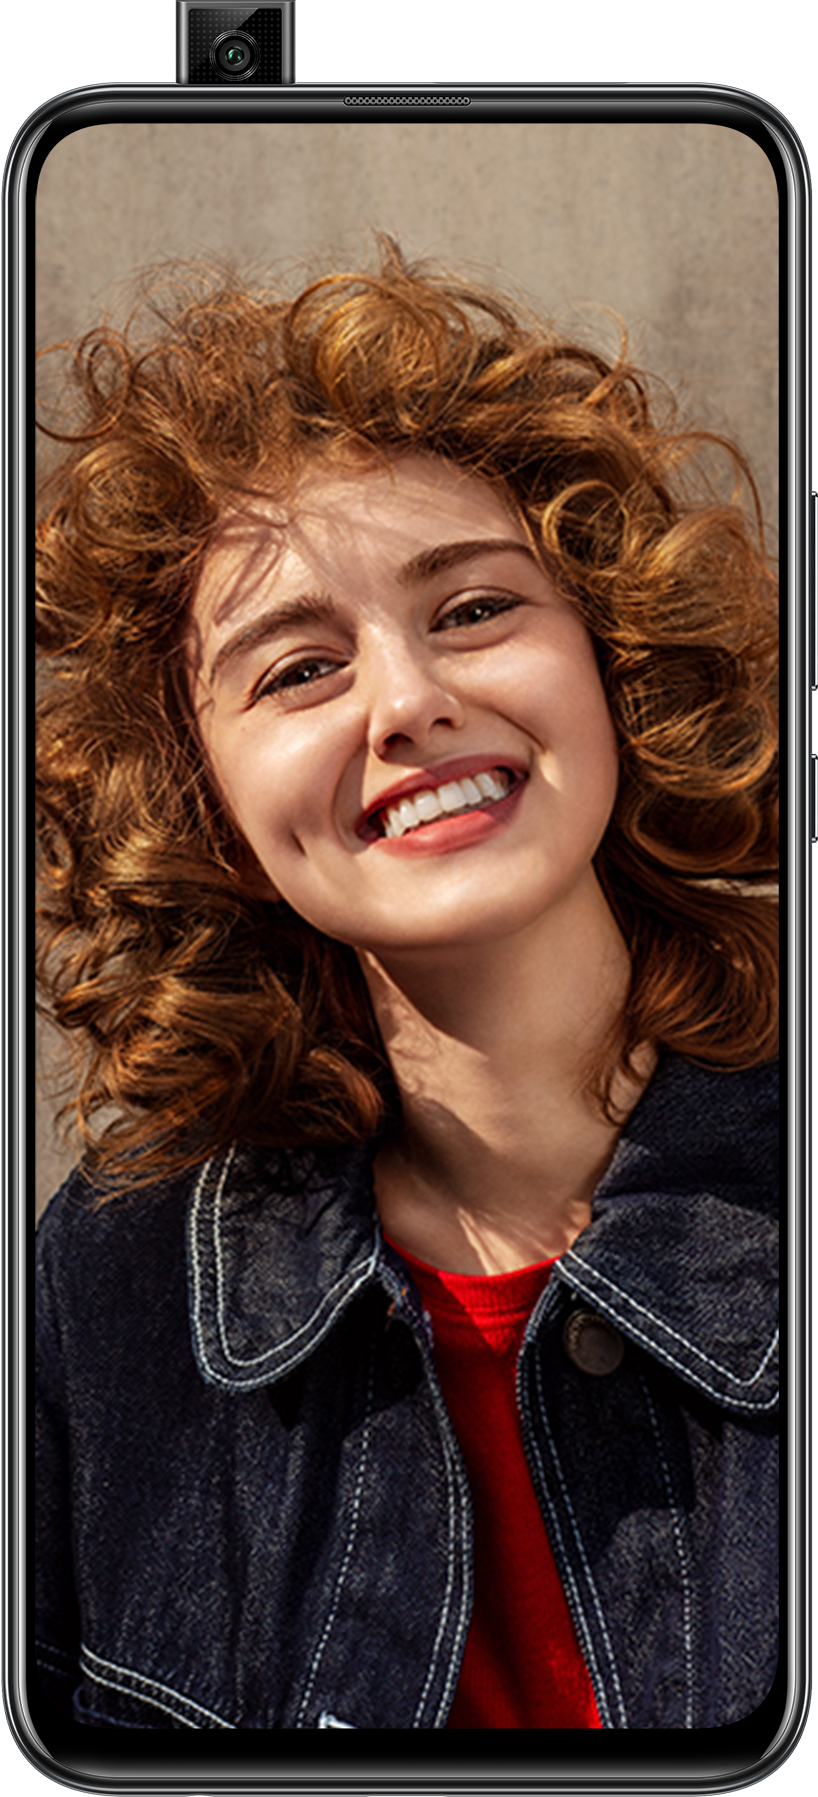 huawei y9 prime 2019 ai selfie front camera